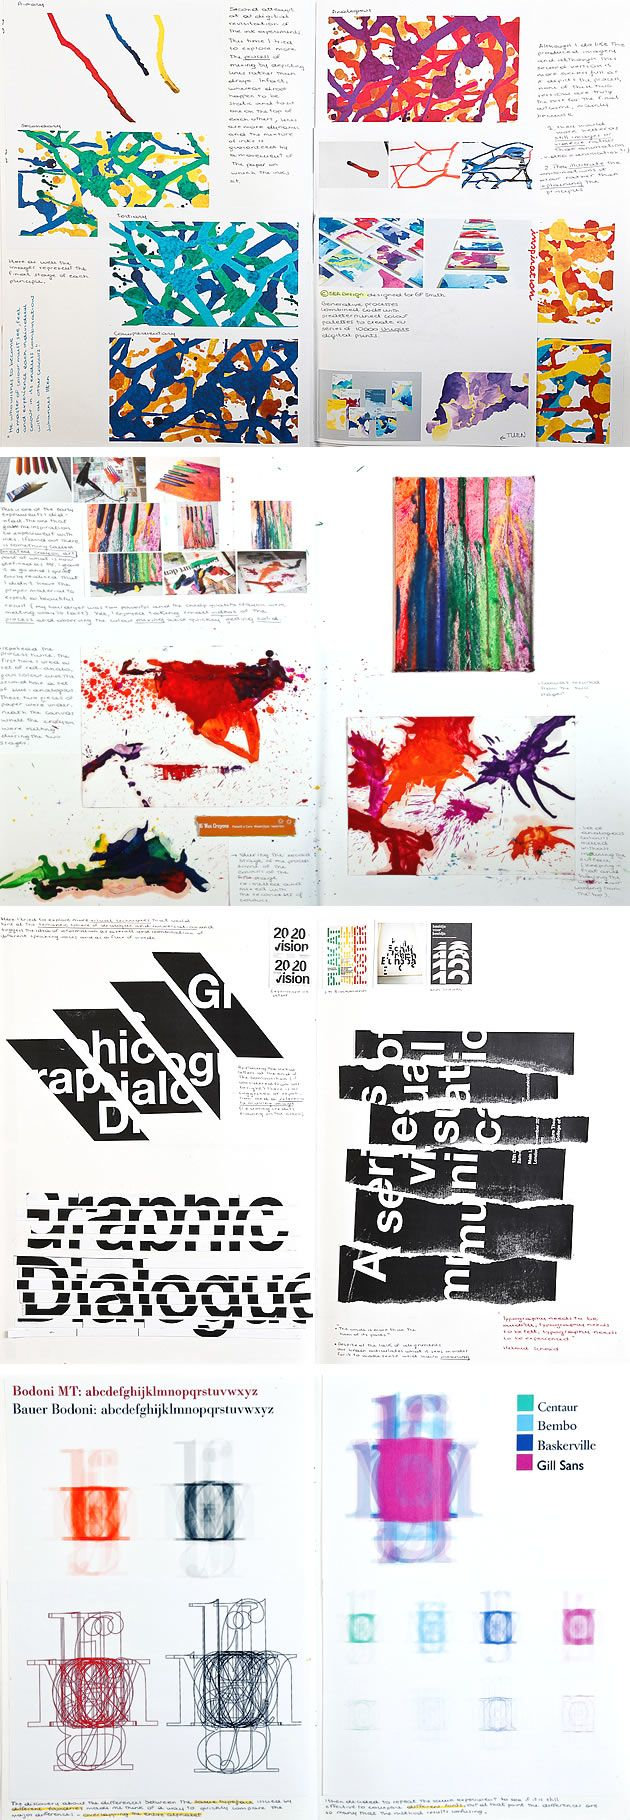 With exuberant and vibrant pages, Susanna Foppoli's sketchbook is a perfect example of what a sketchbook should be: a space to explore, play and experiment with different ideas, media and techniques. The typographic exploration (manipulating, tearing, cutting, scanning) rework classic typefaces to produce modern and exciting outcomes.